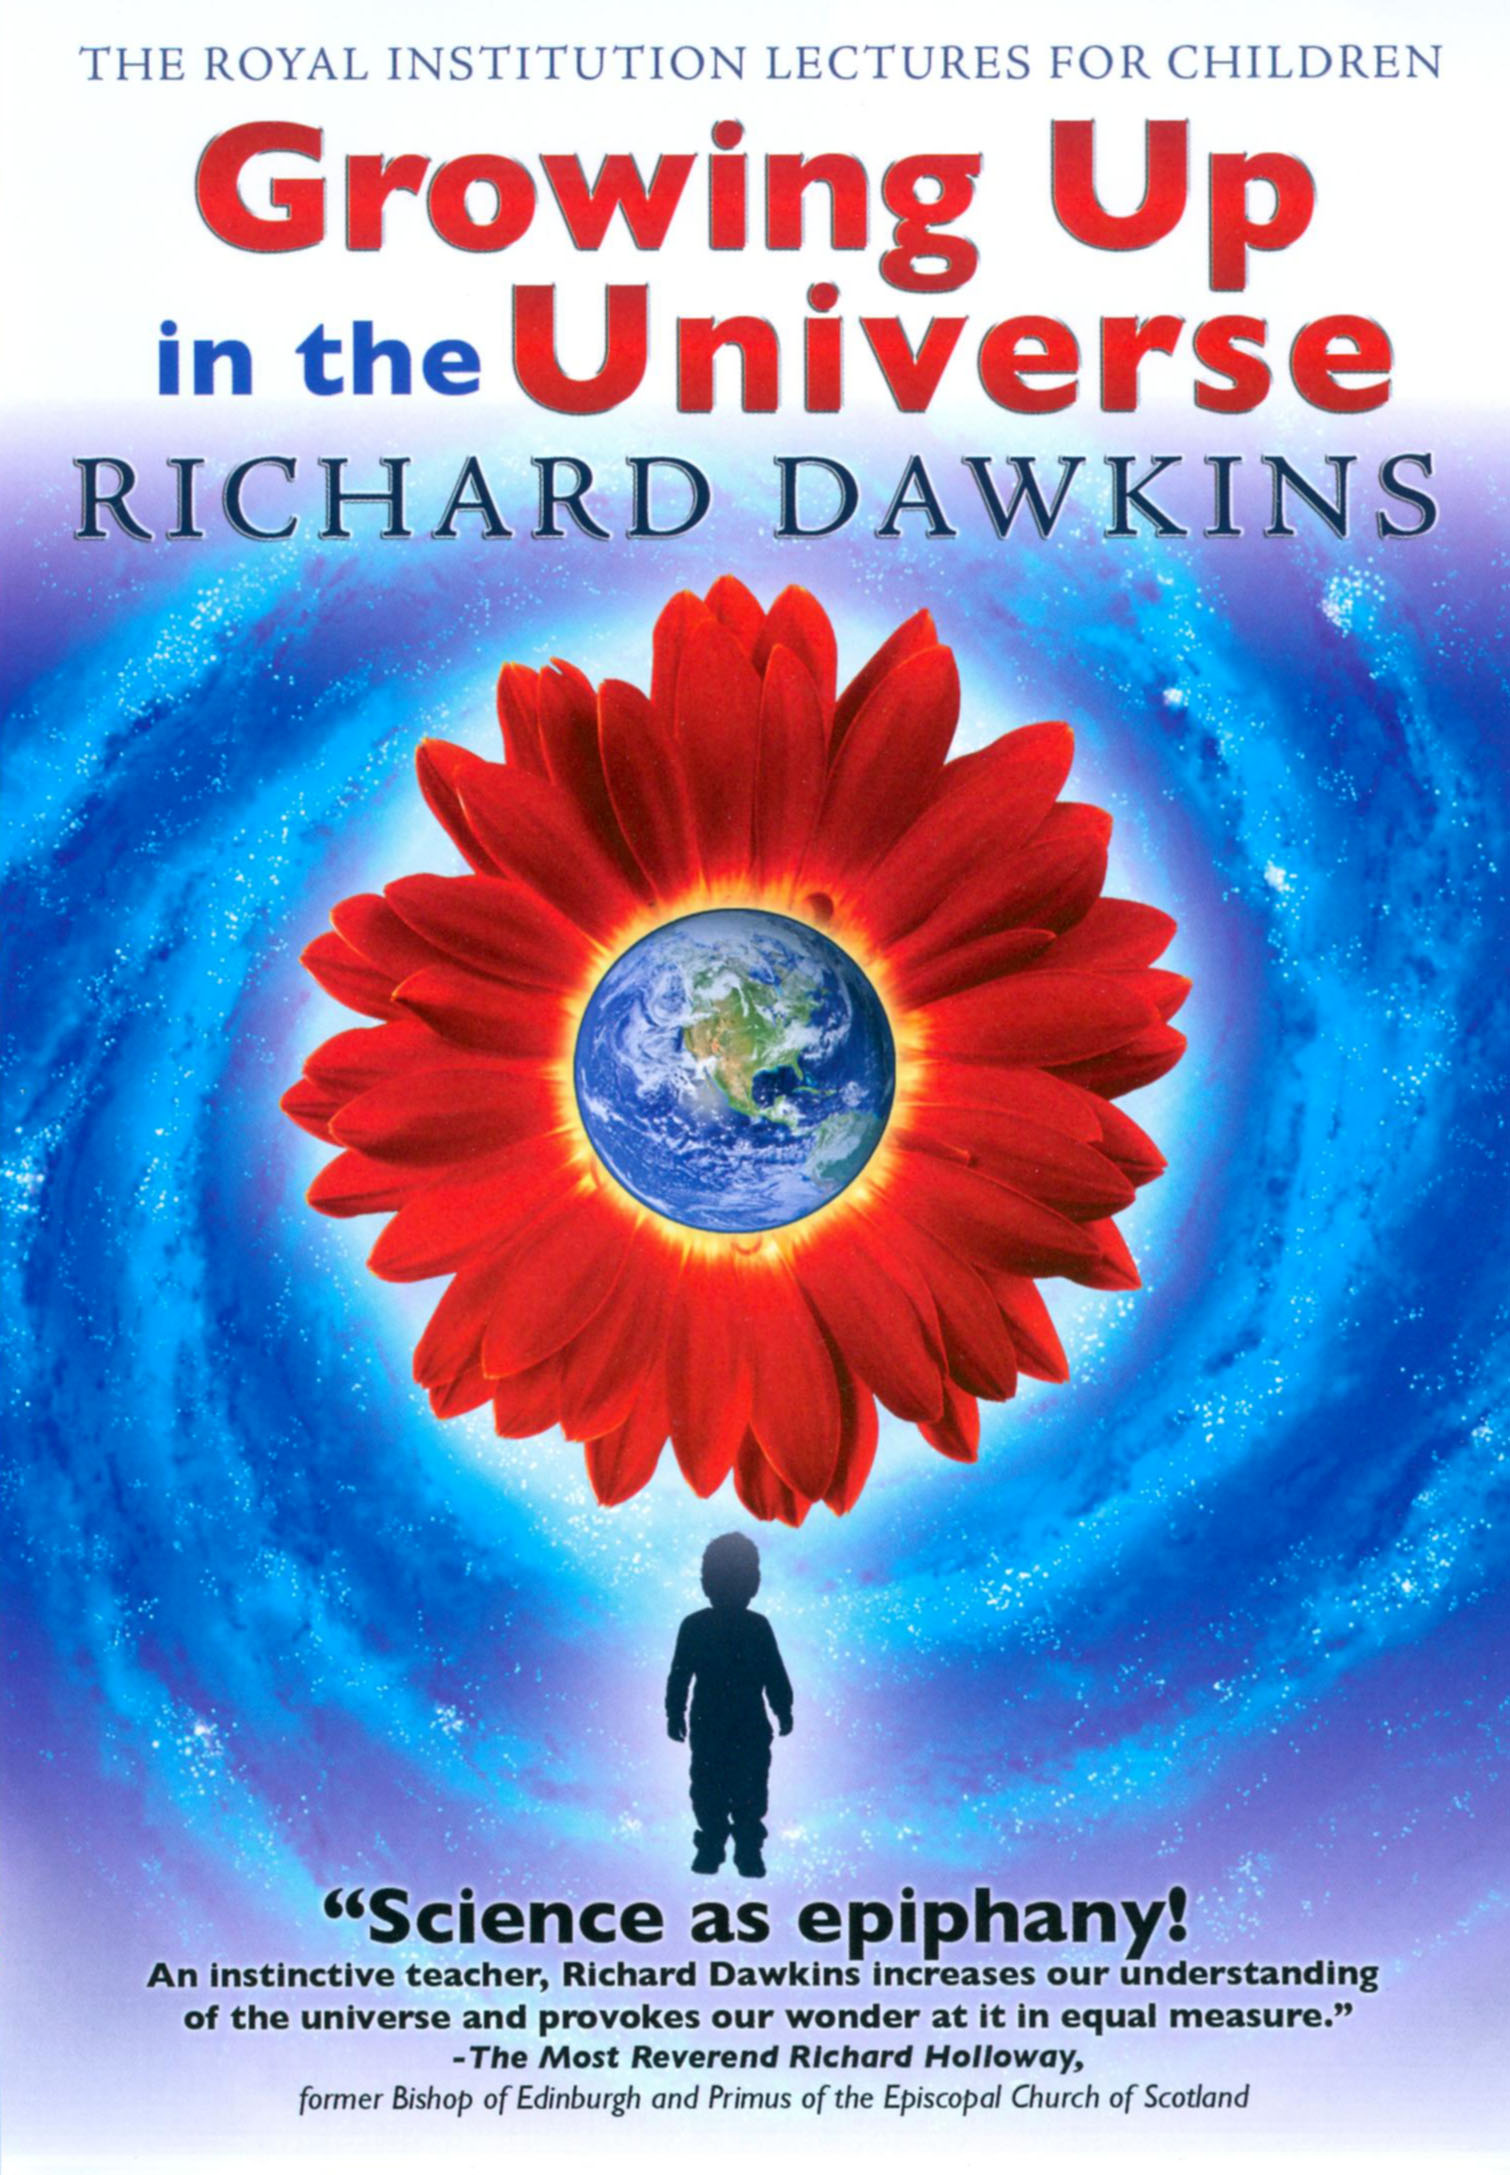 Richard Dawkins: Growing Up in the Universe